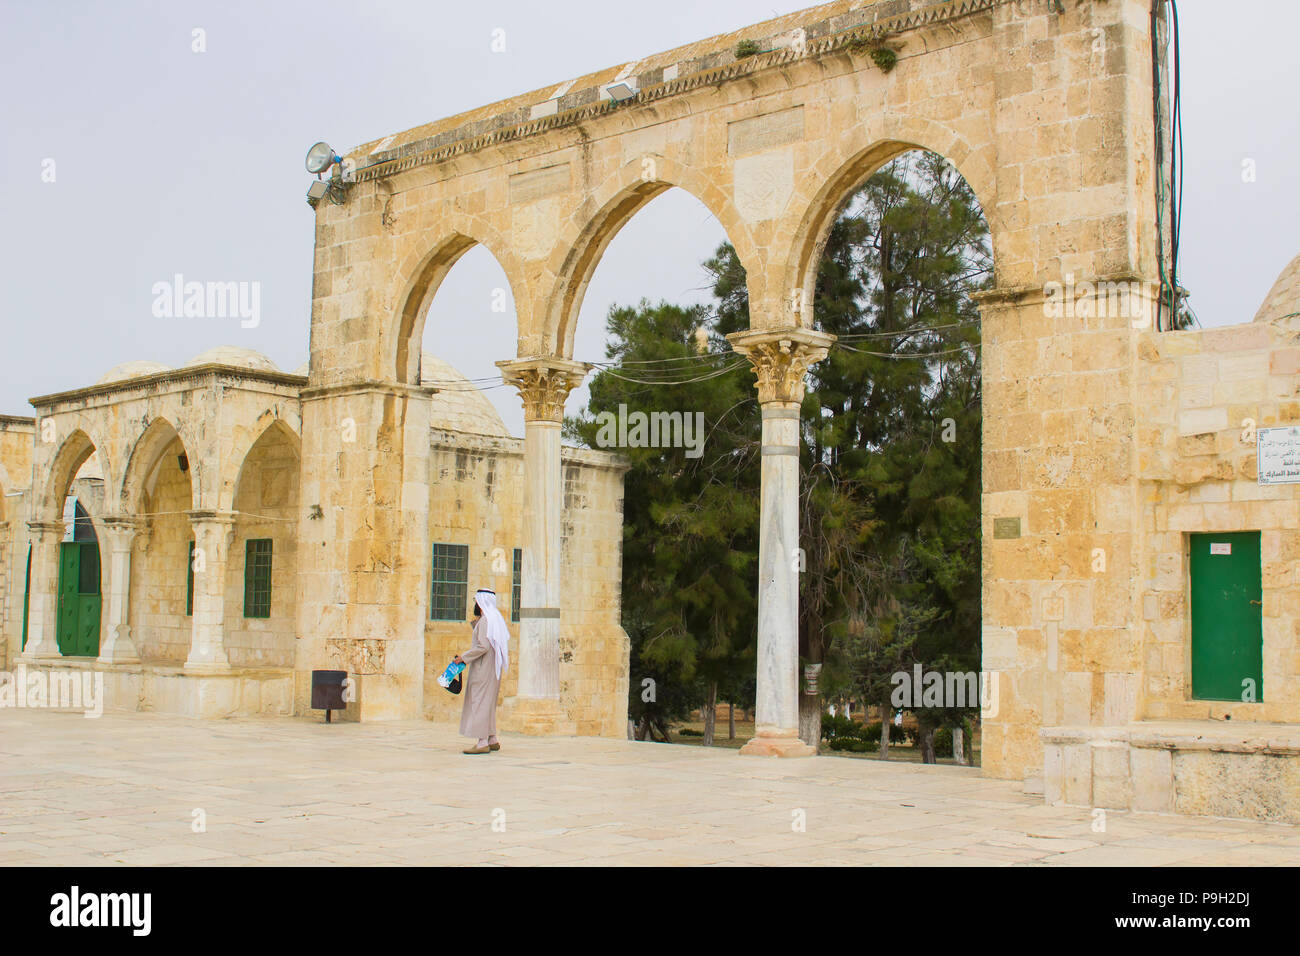 Some of the domed shrines on The Temple Mount in Jerusalem Israel. The place of the Dome of The Rock Islamic Mosque - Stock Image